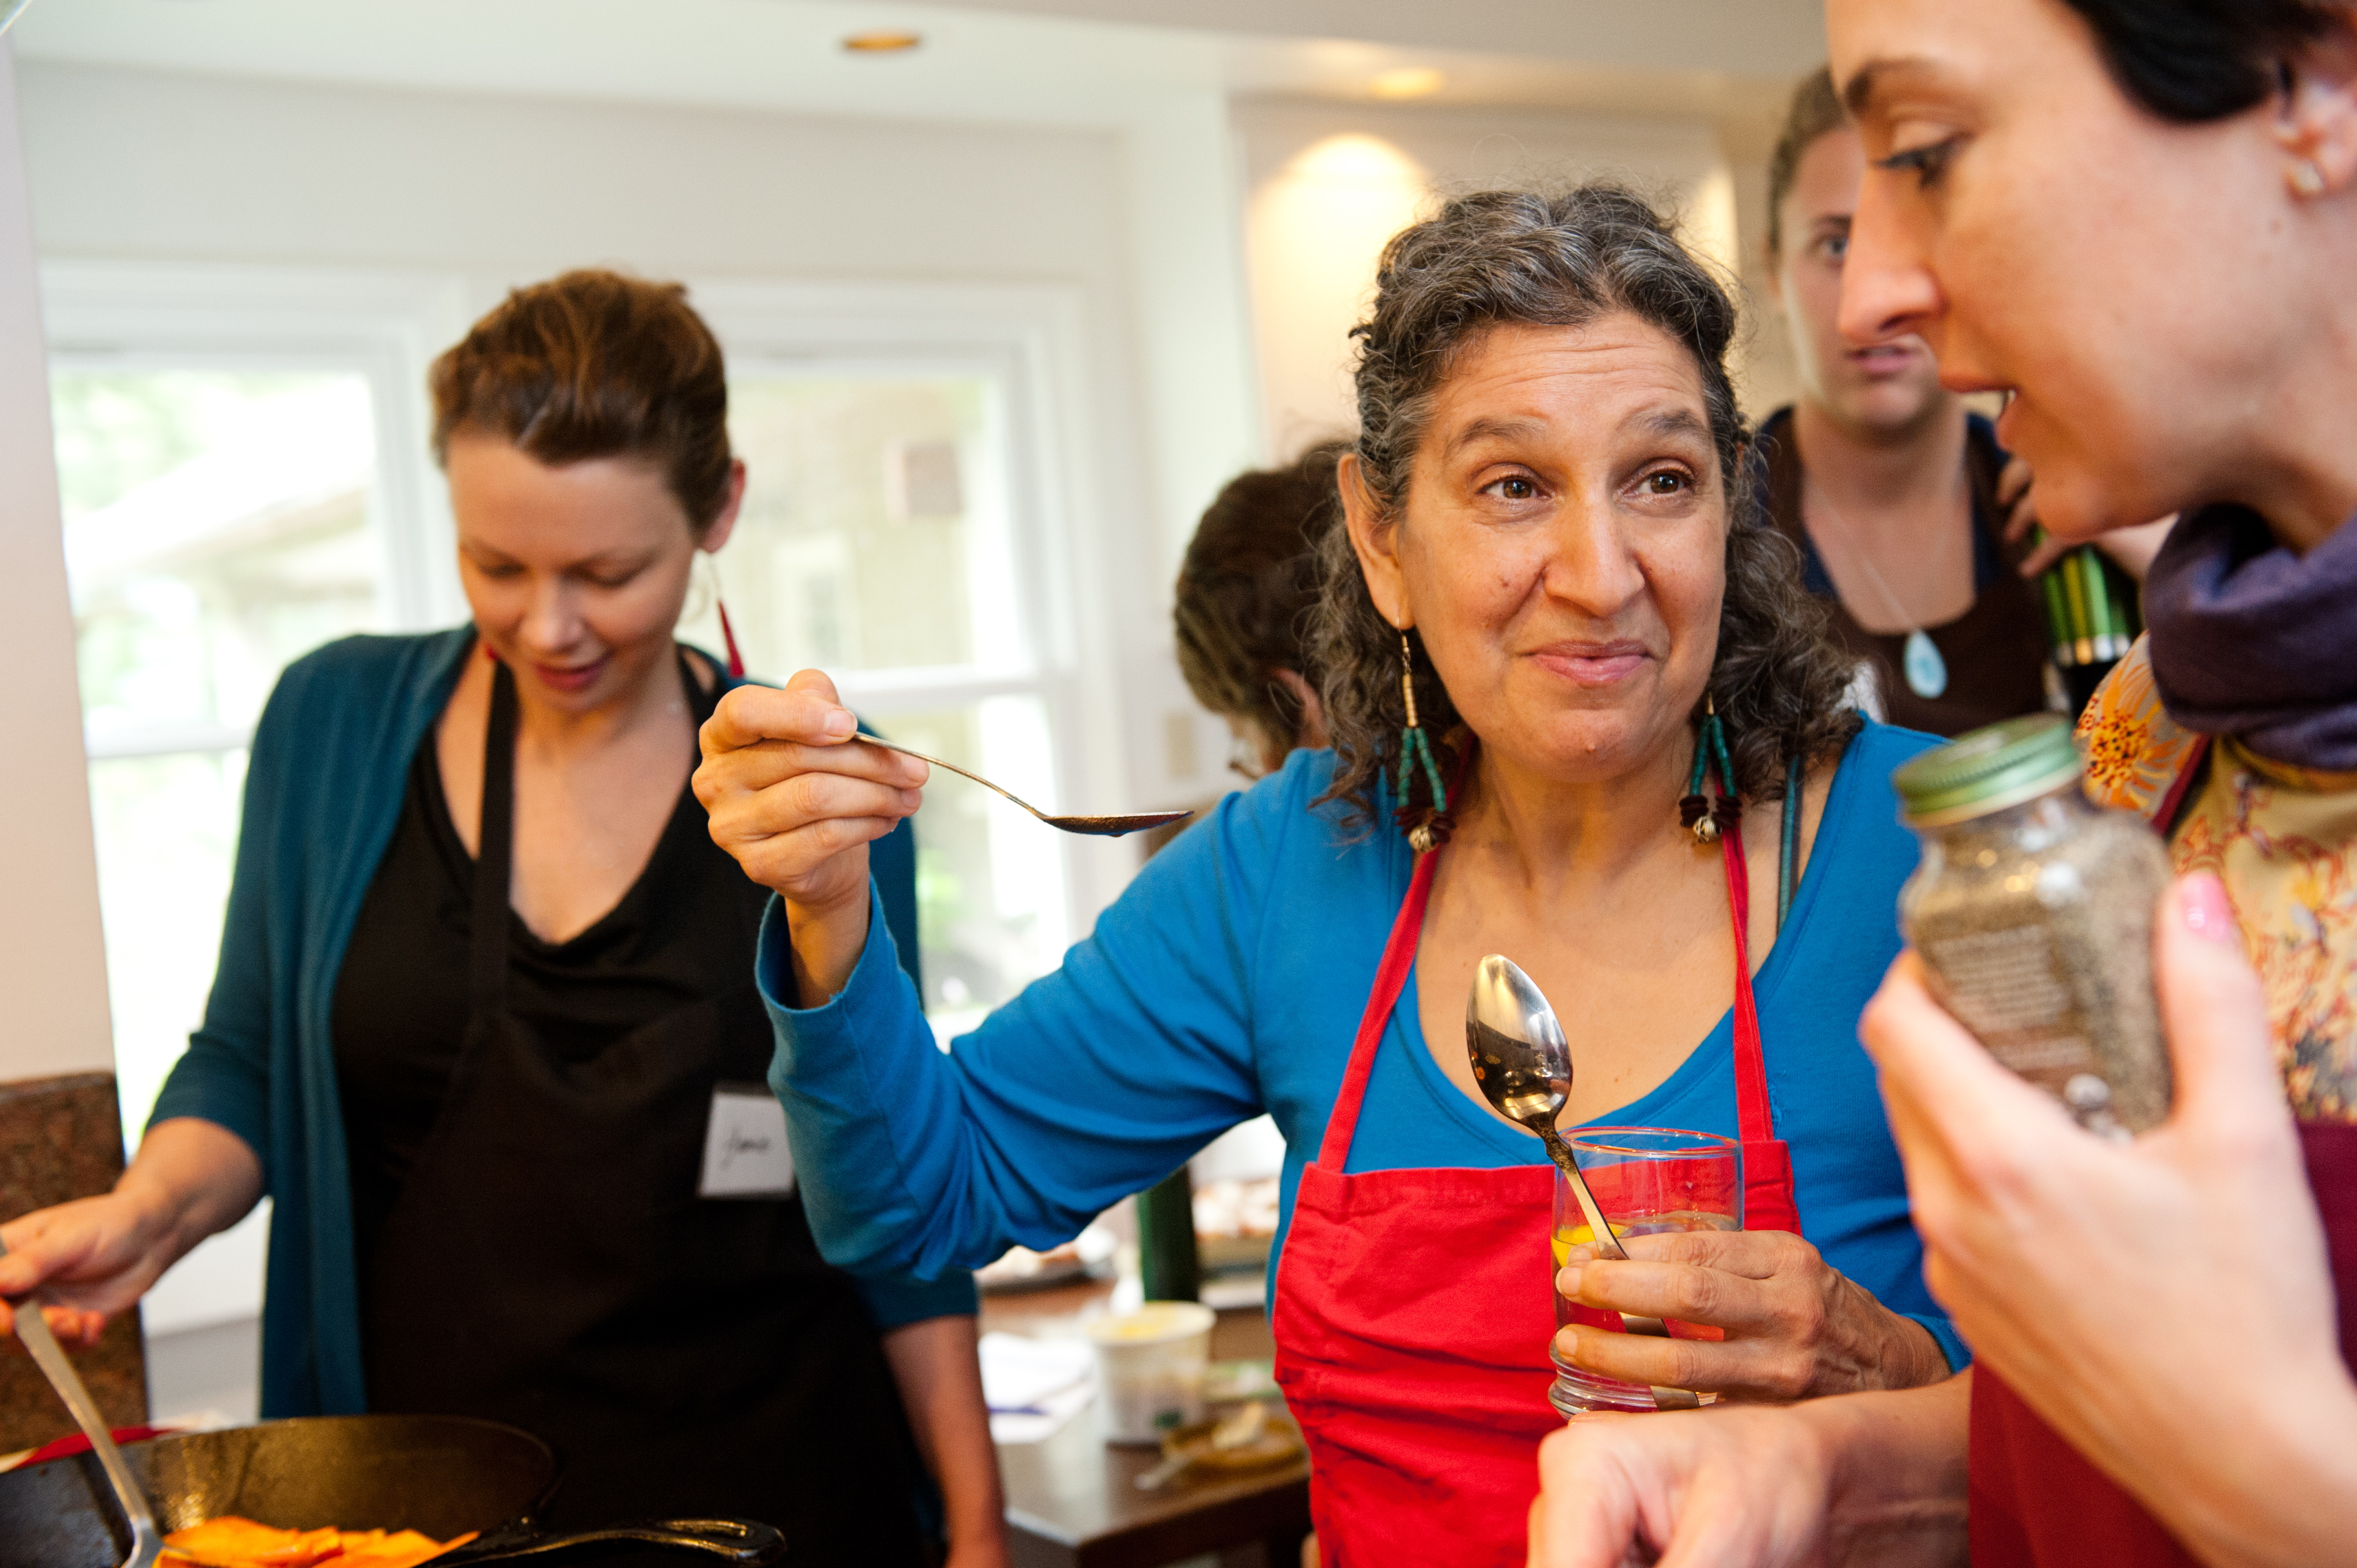 Teaching cooking, Leslie Cerier instructs to taste the recipe